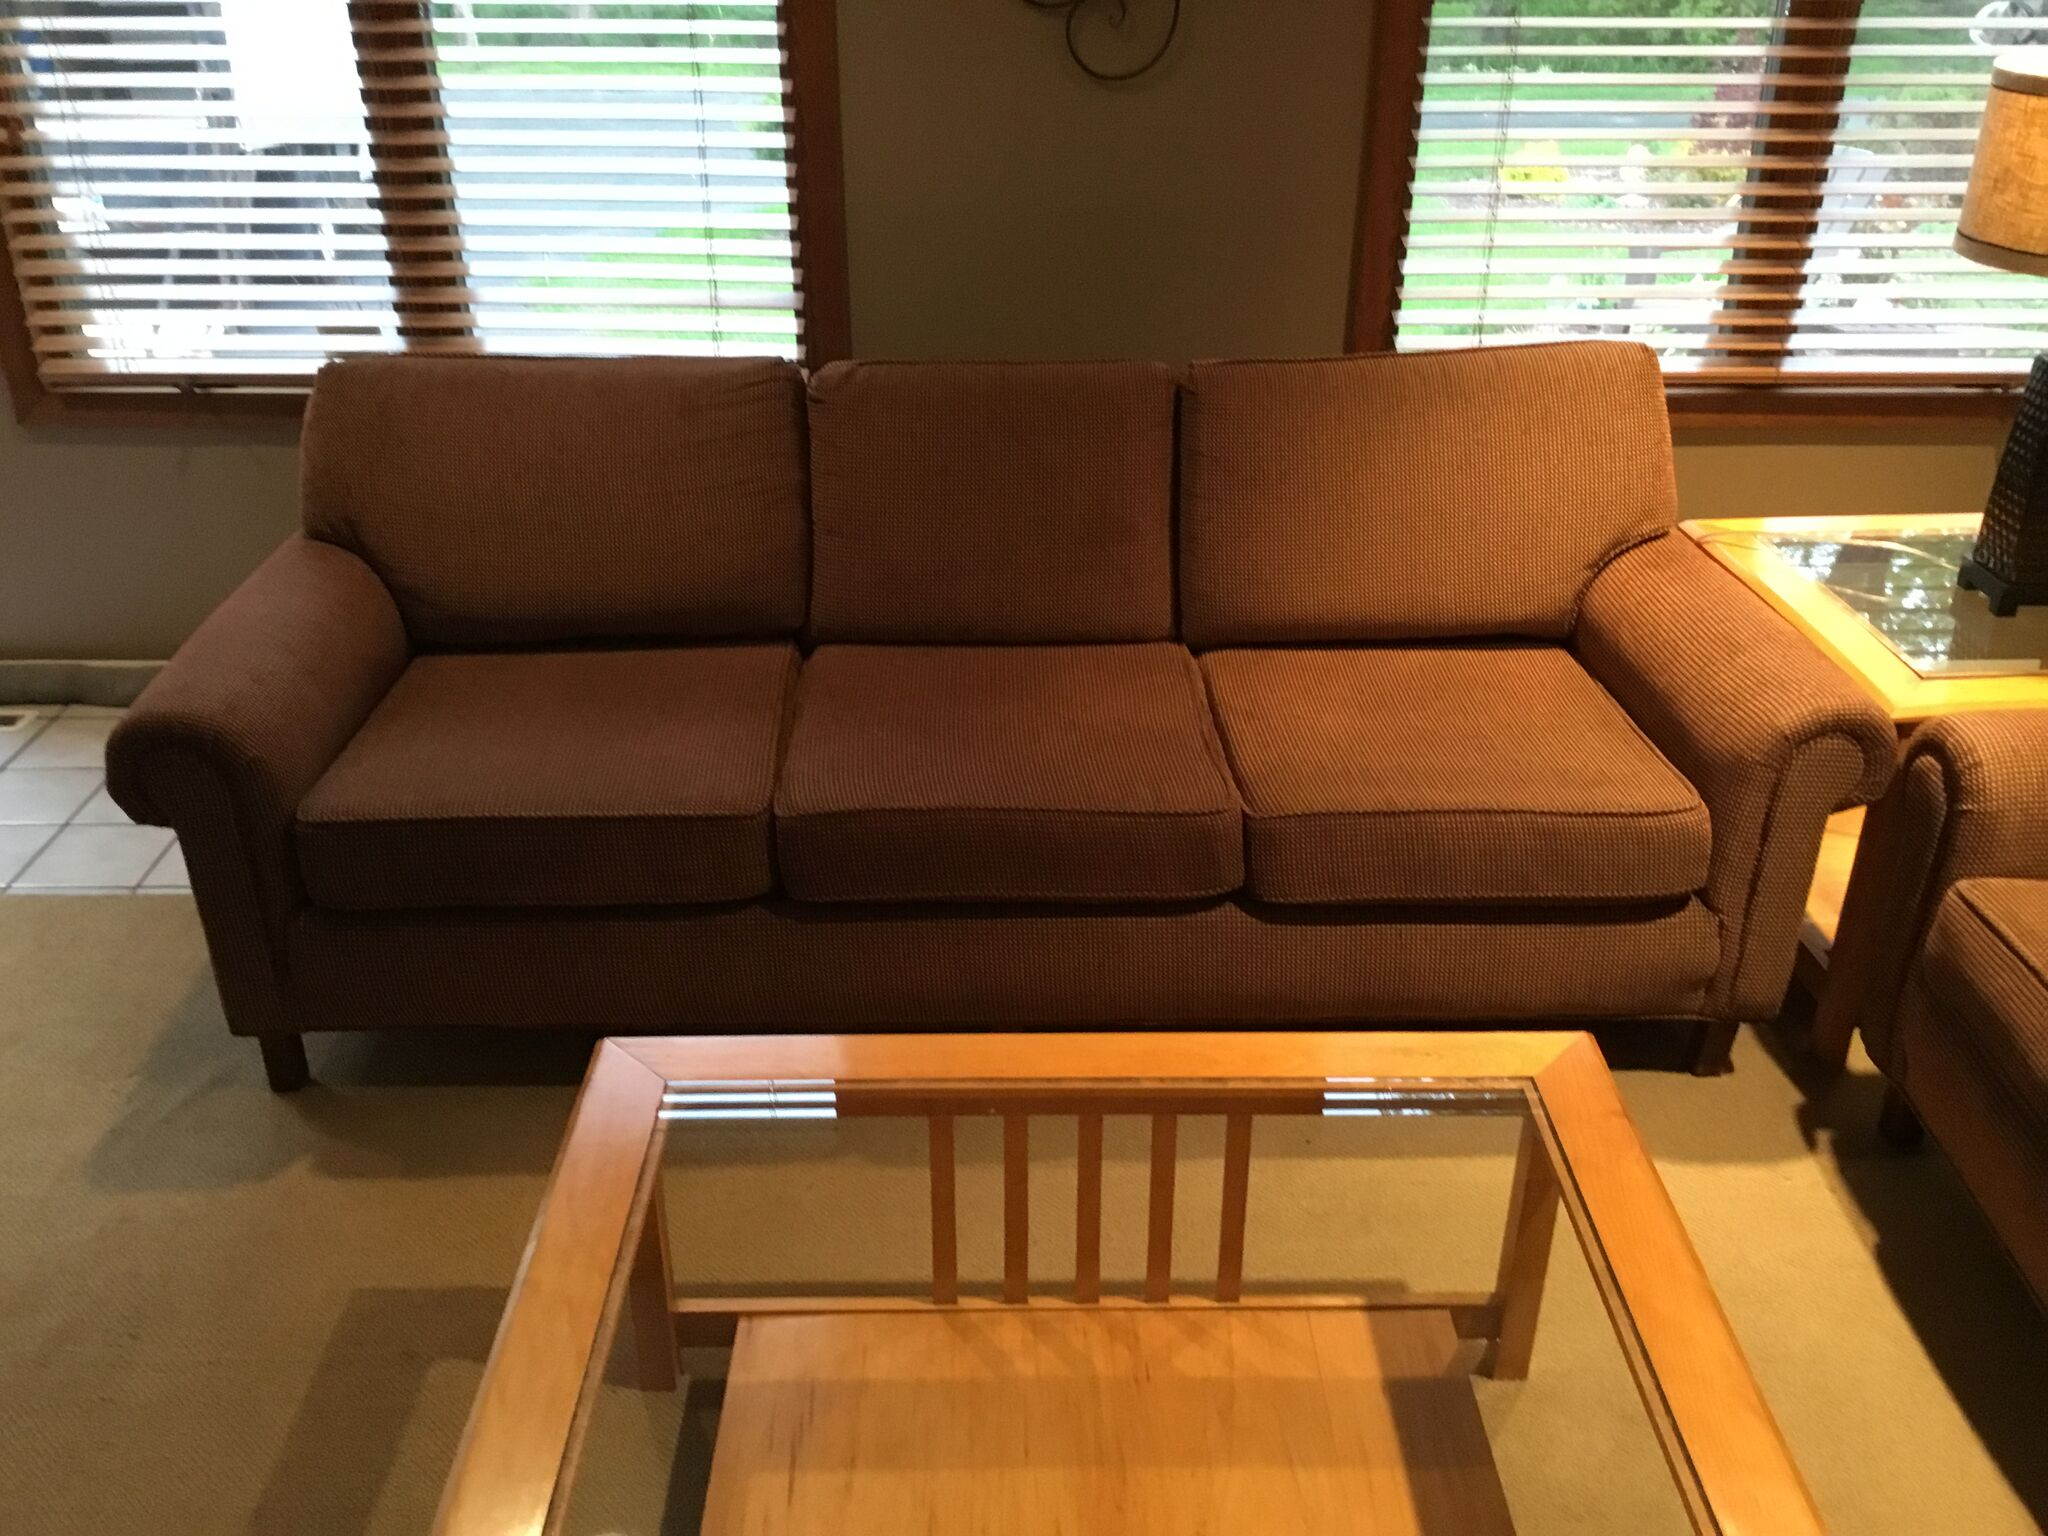 Thomasville Brown Couch 7 Foot Long